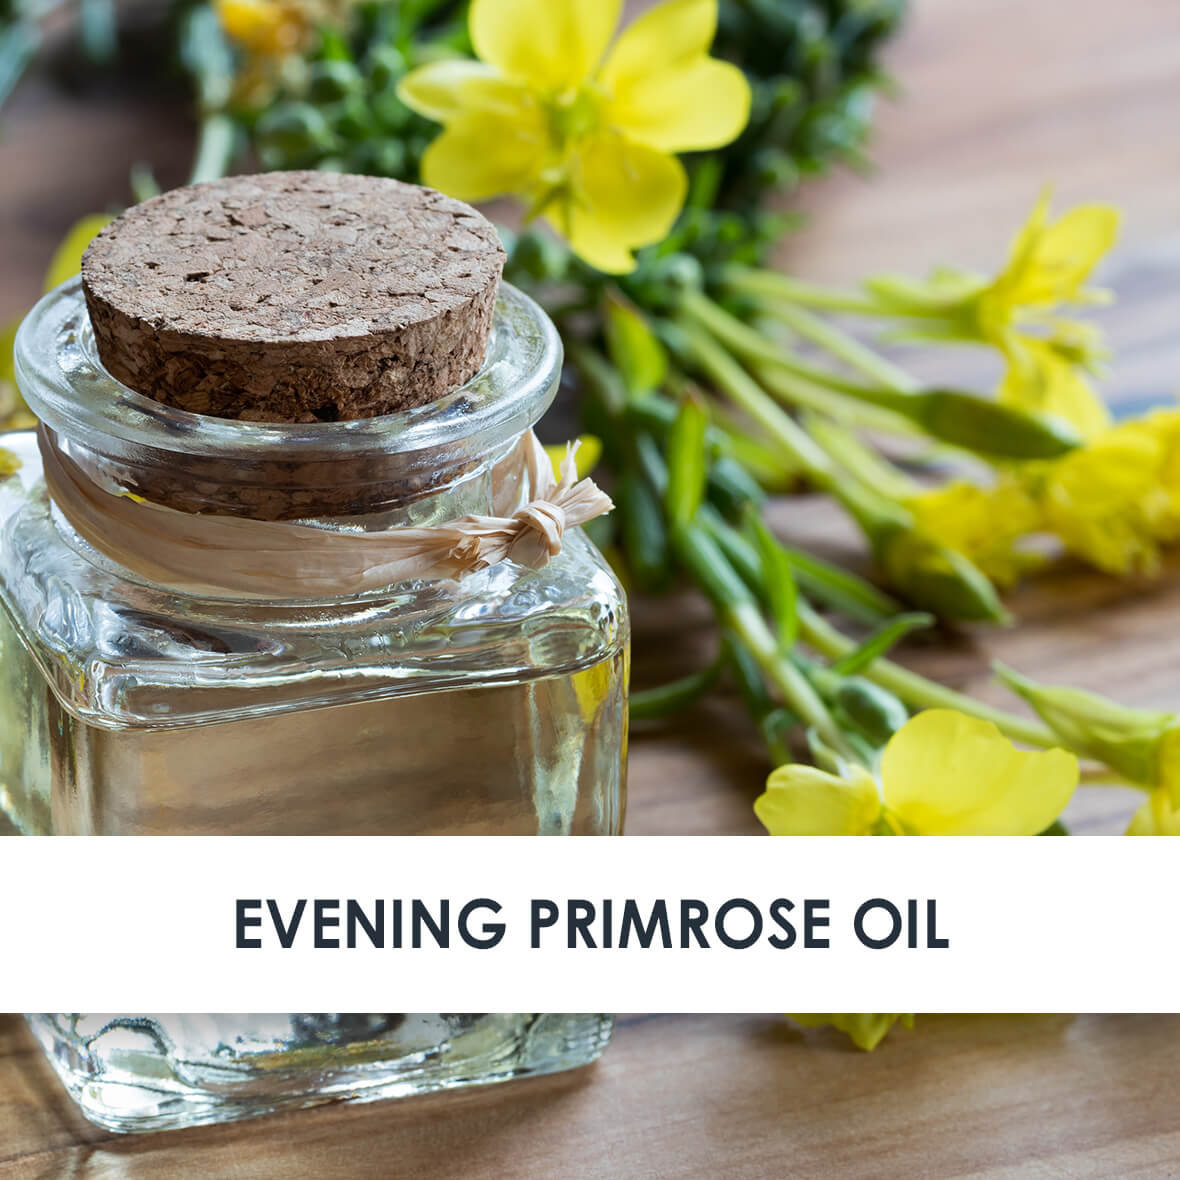 Evening Primrose Oil Skincare Benefits